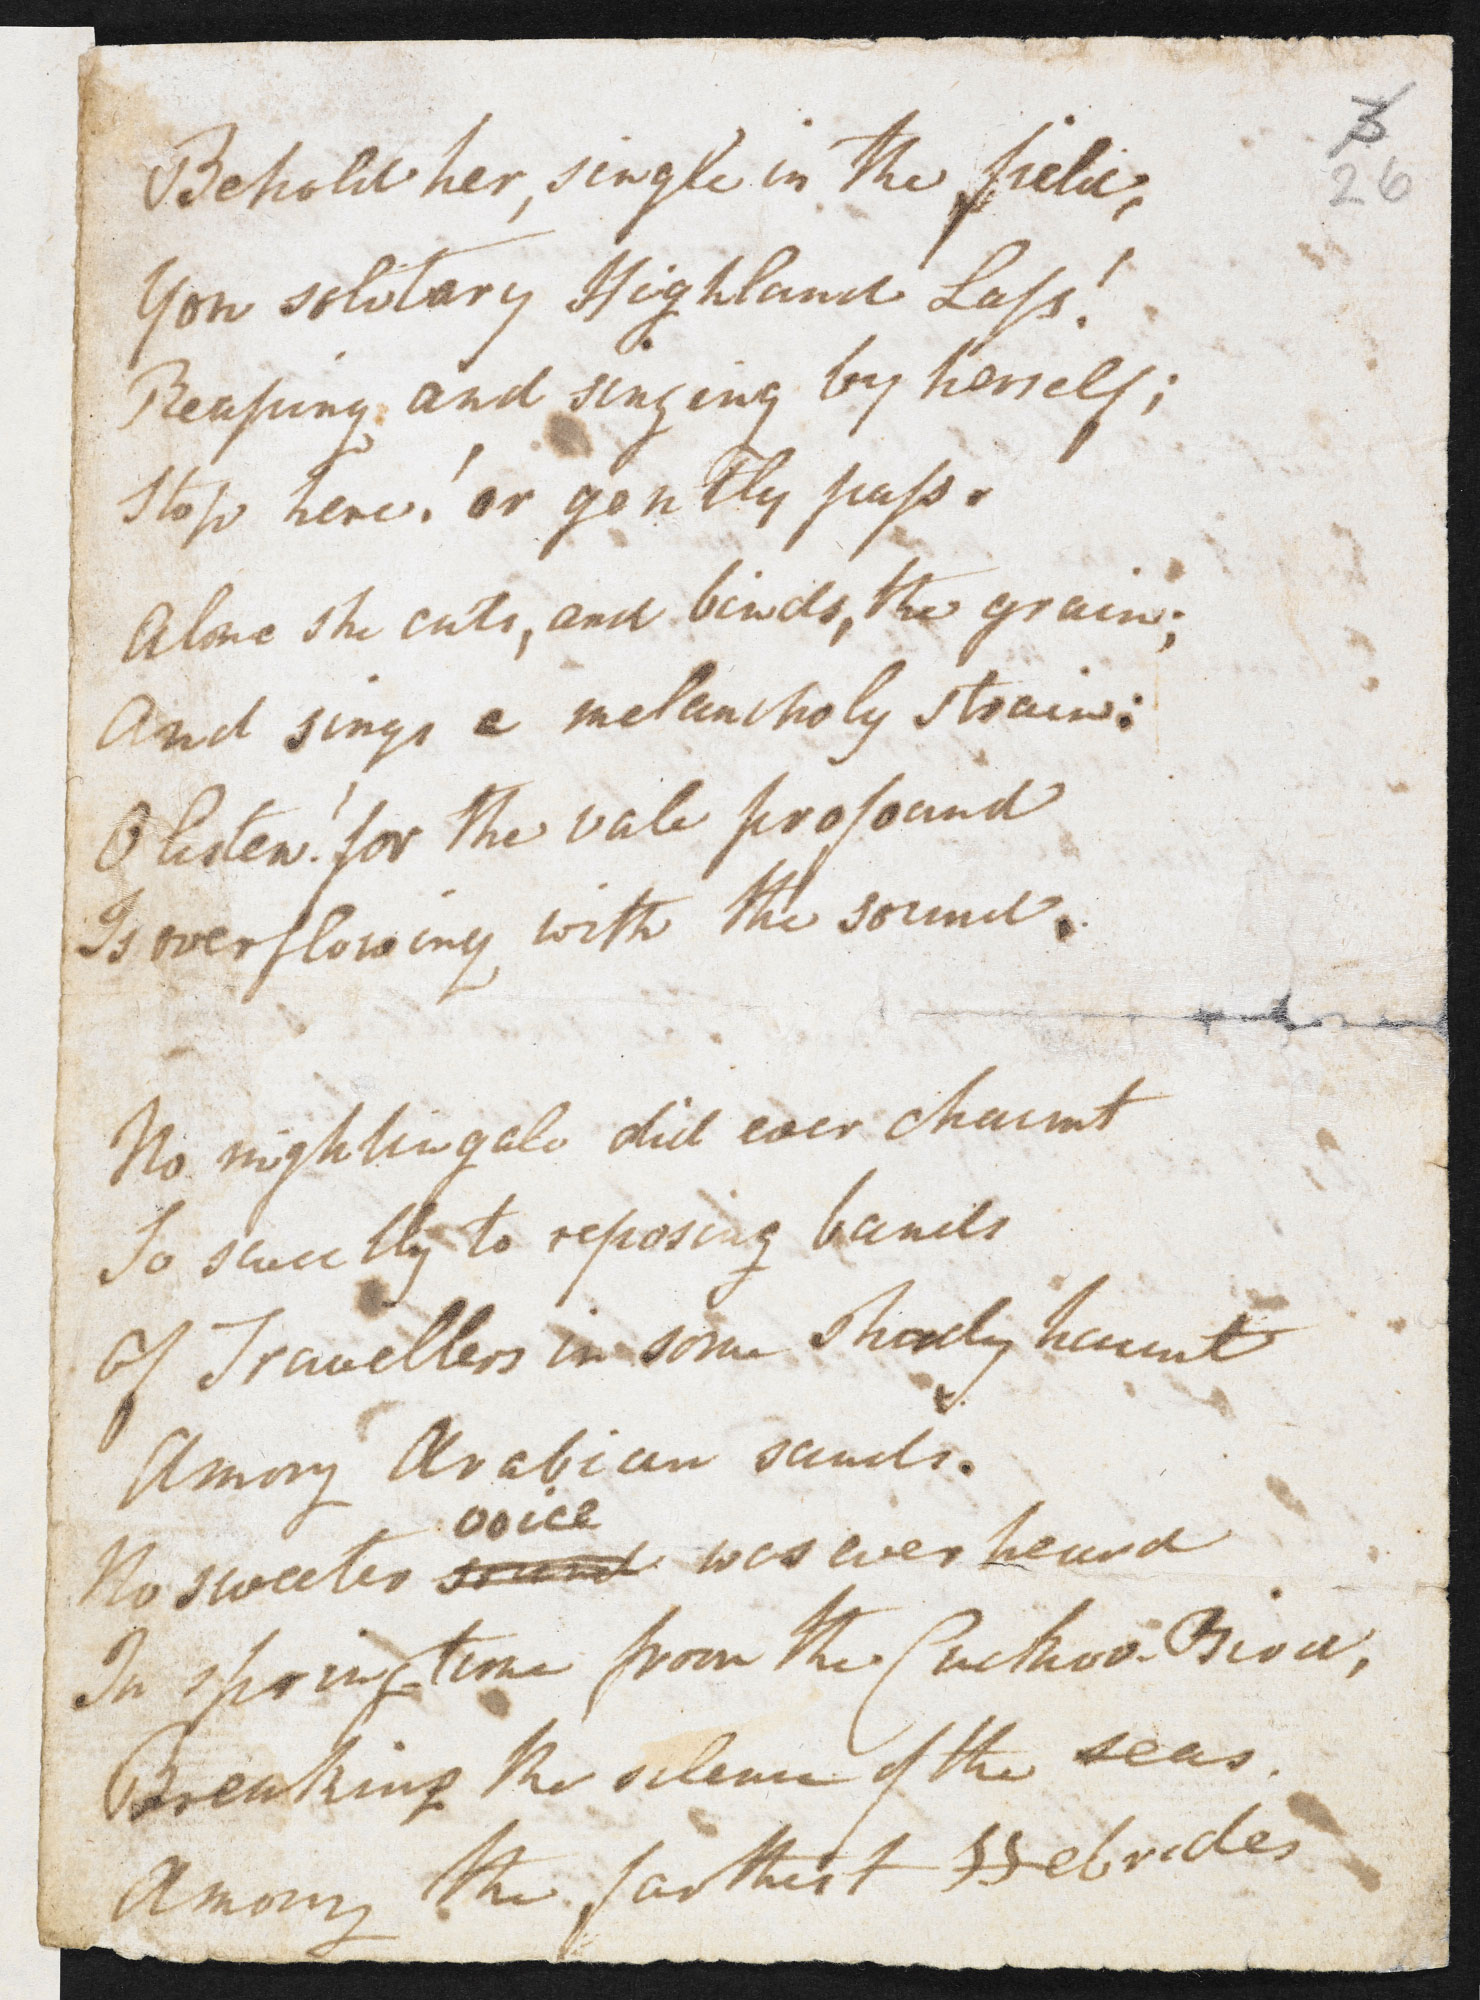 Manuscript of 'The Solitary Reaper' by William Wordsworth - The